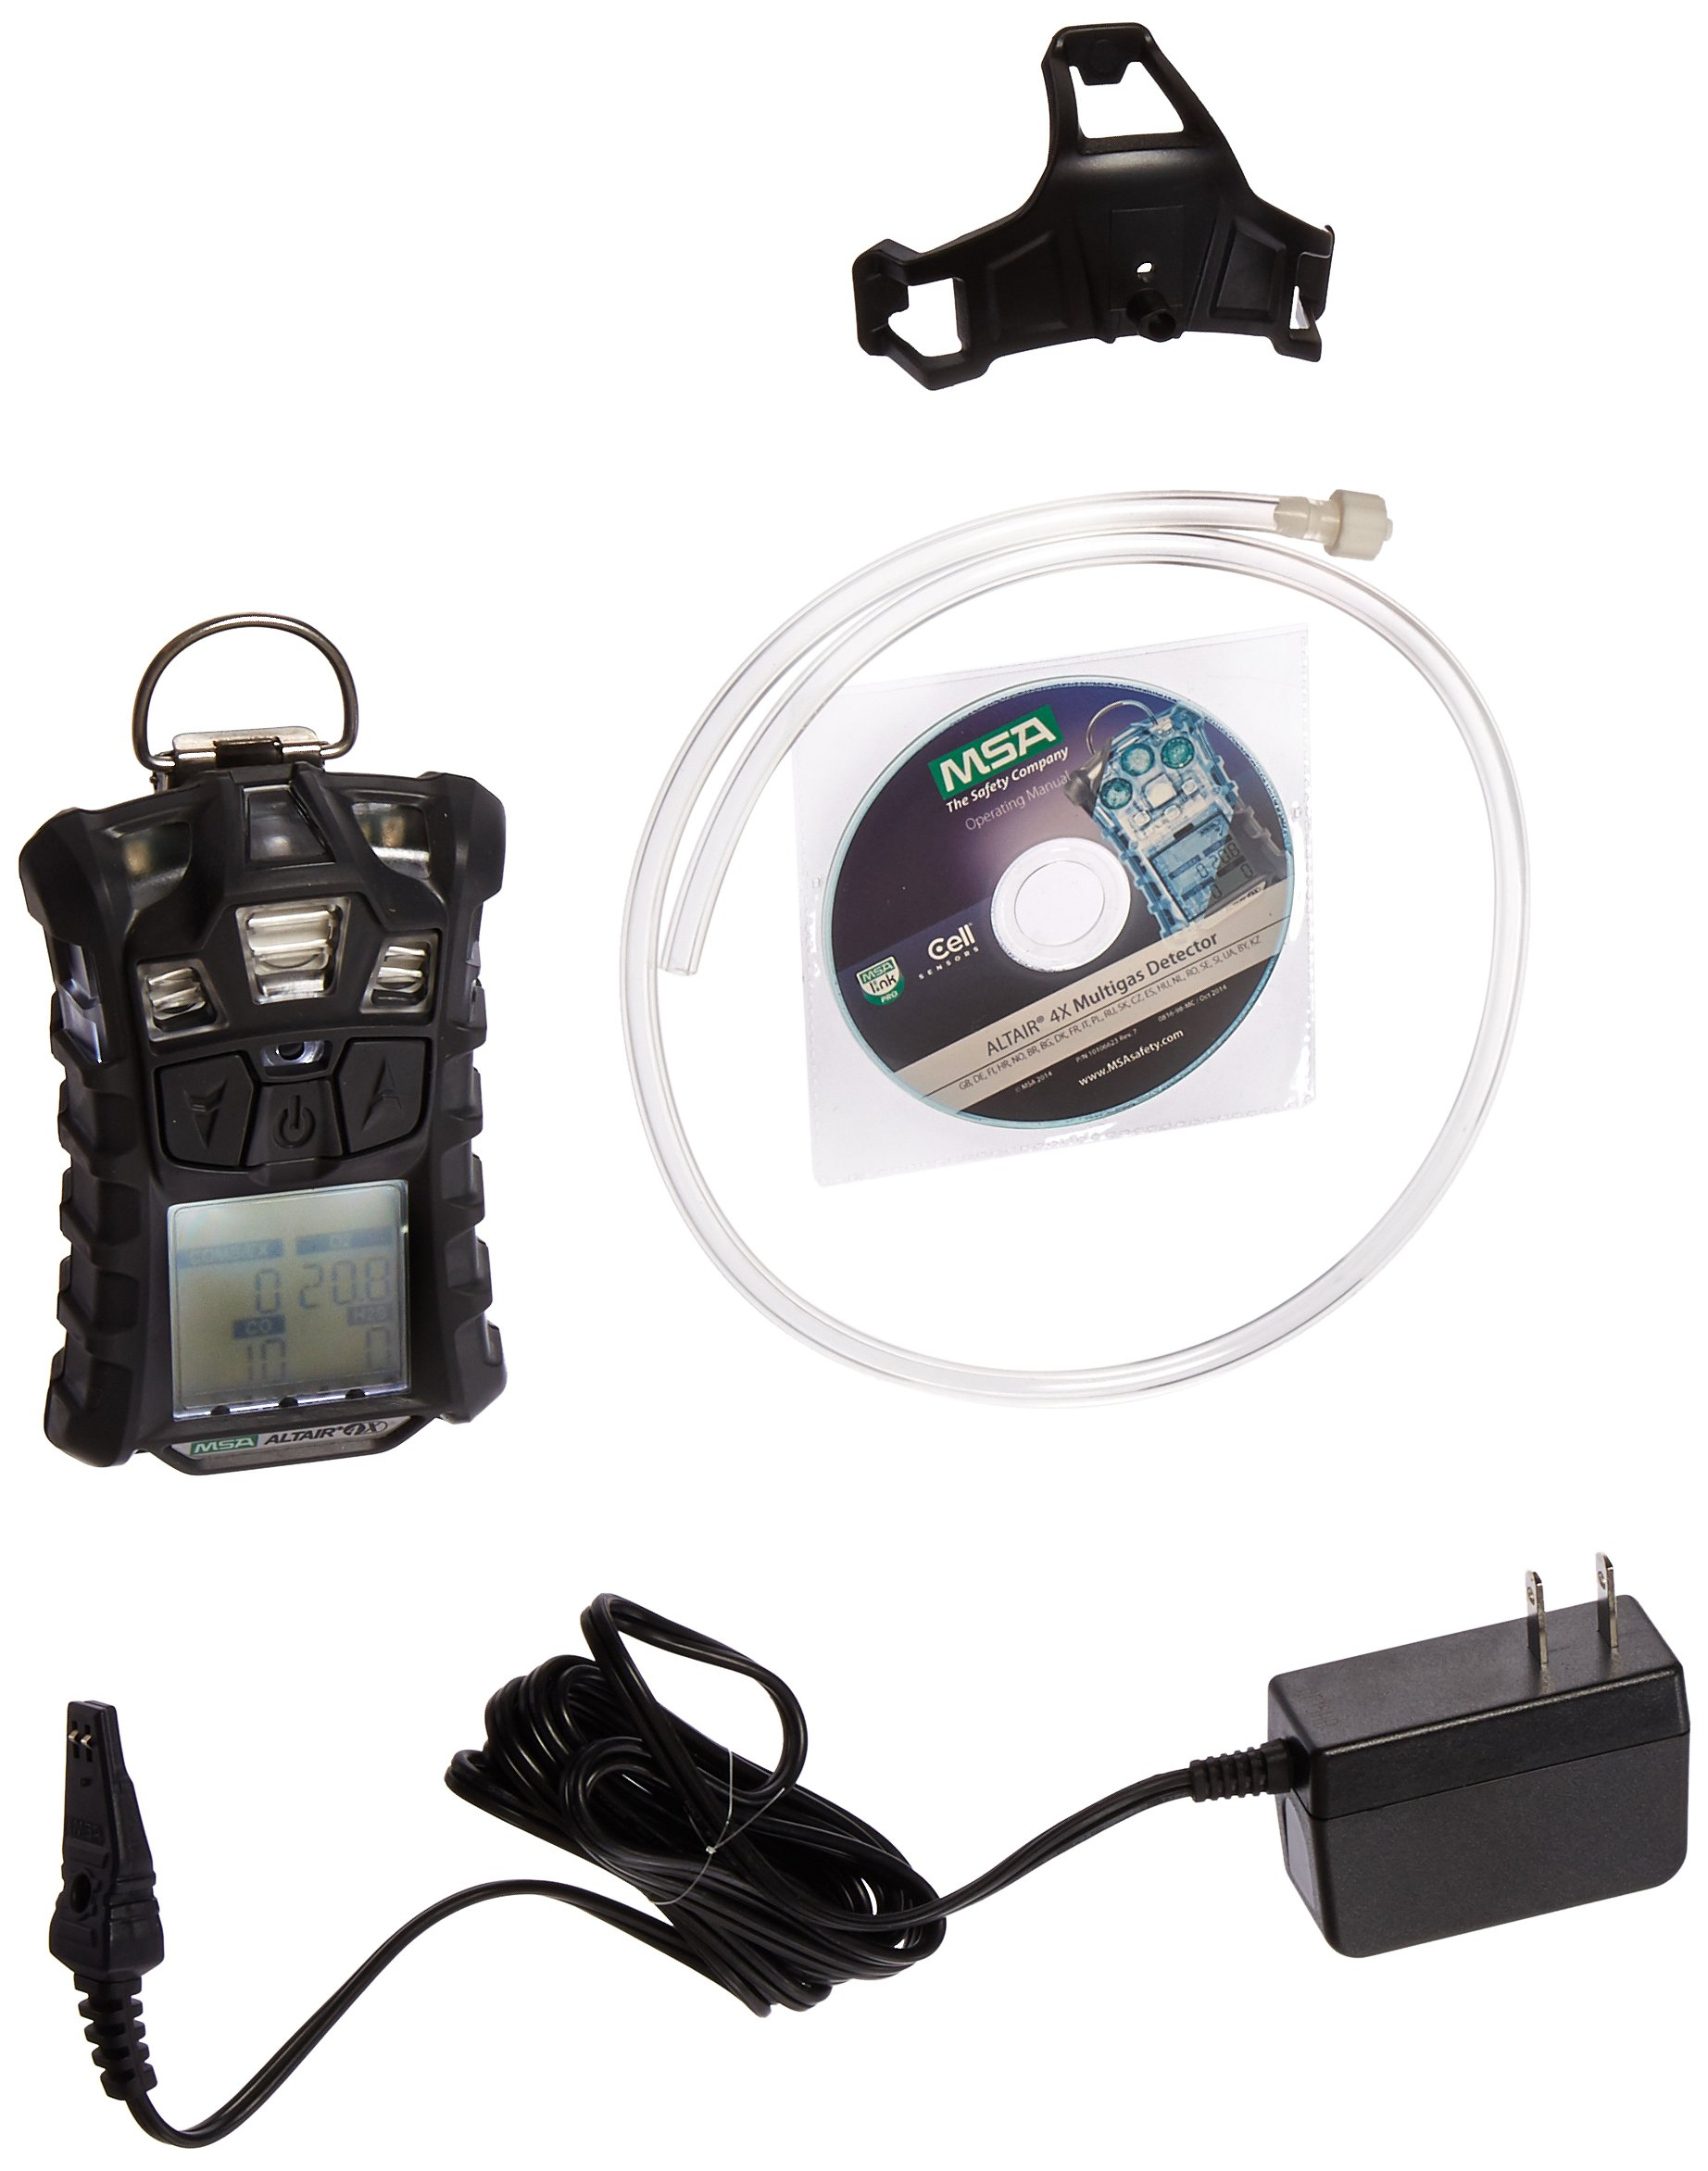 MSA (Mine Safety Appliances) 10107602 Altair 4X Portable Combustible Gas, Oxygen, Hydrogen Sulfide and Carbon Monoxide Monitor with Motion Alert by MSA (Mine Safety Appliances Co)